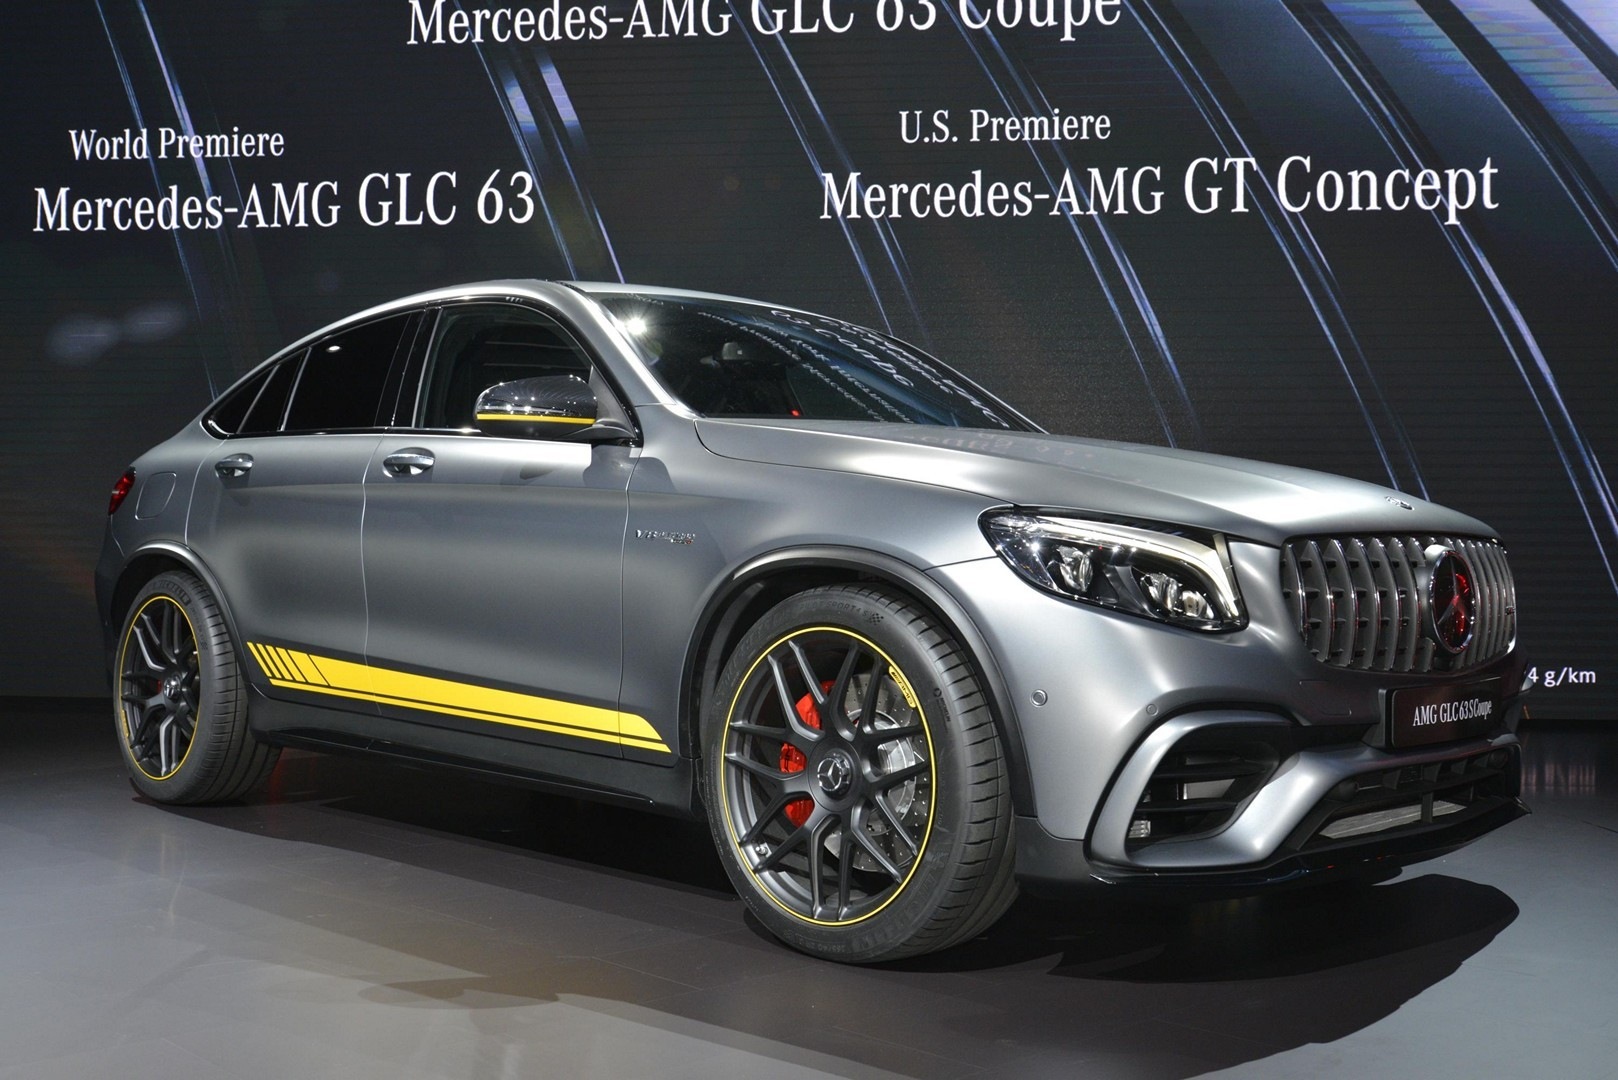 Mercedes Amg Glc 63 S Has Two Bodies And Panamericana